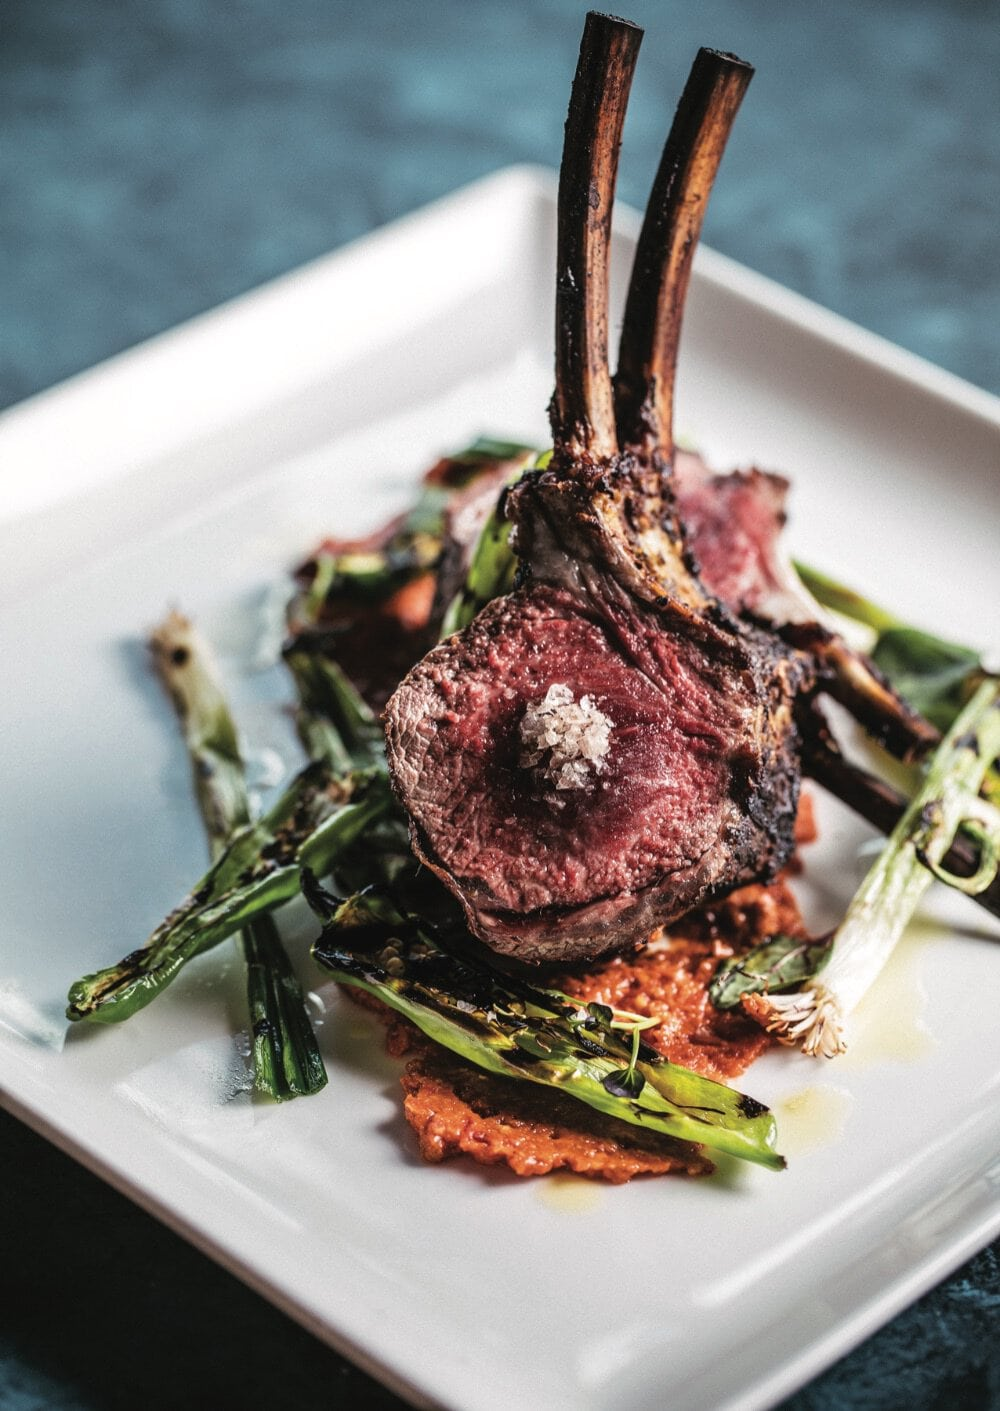 Grilled Rack of Lamb at 1000 NORTH